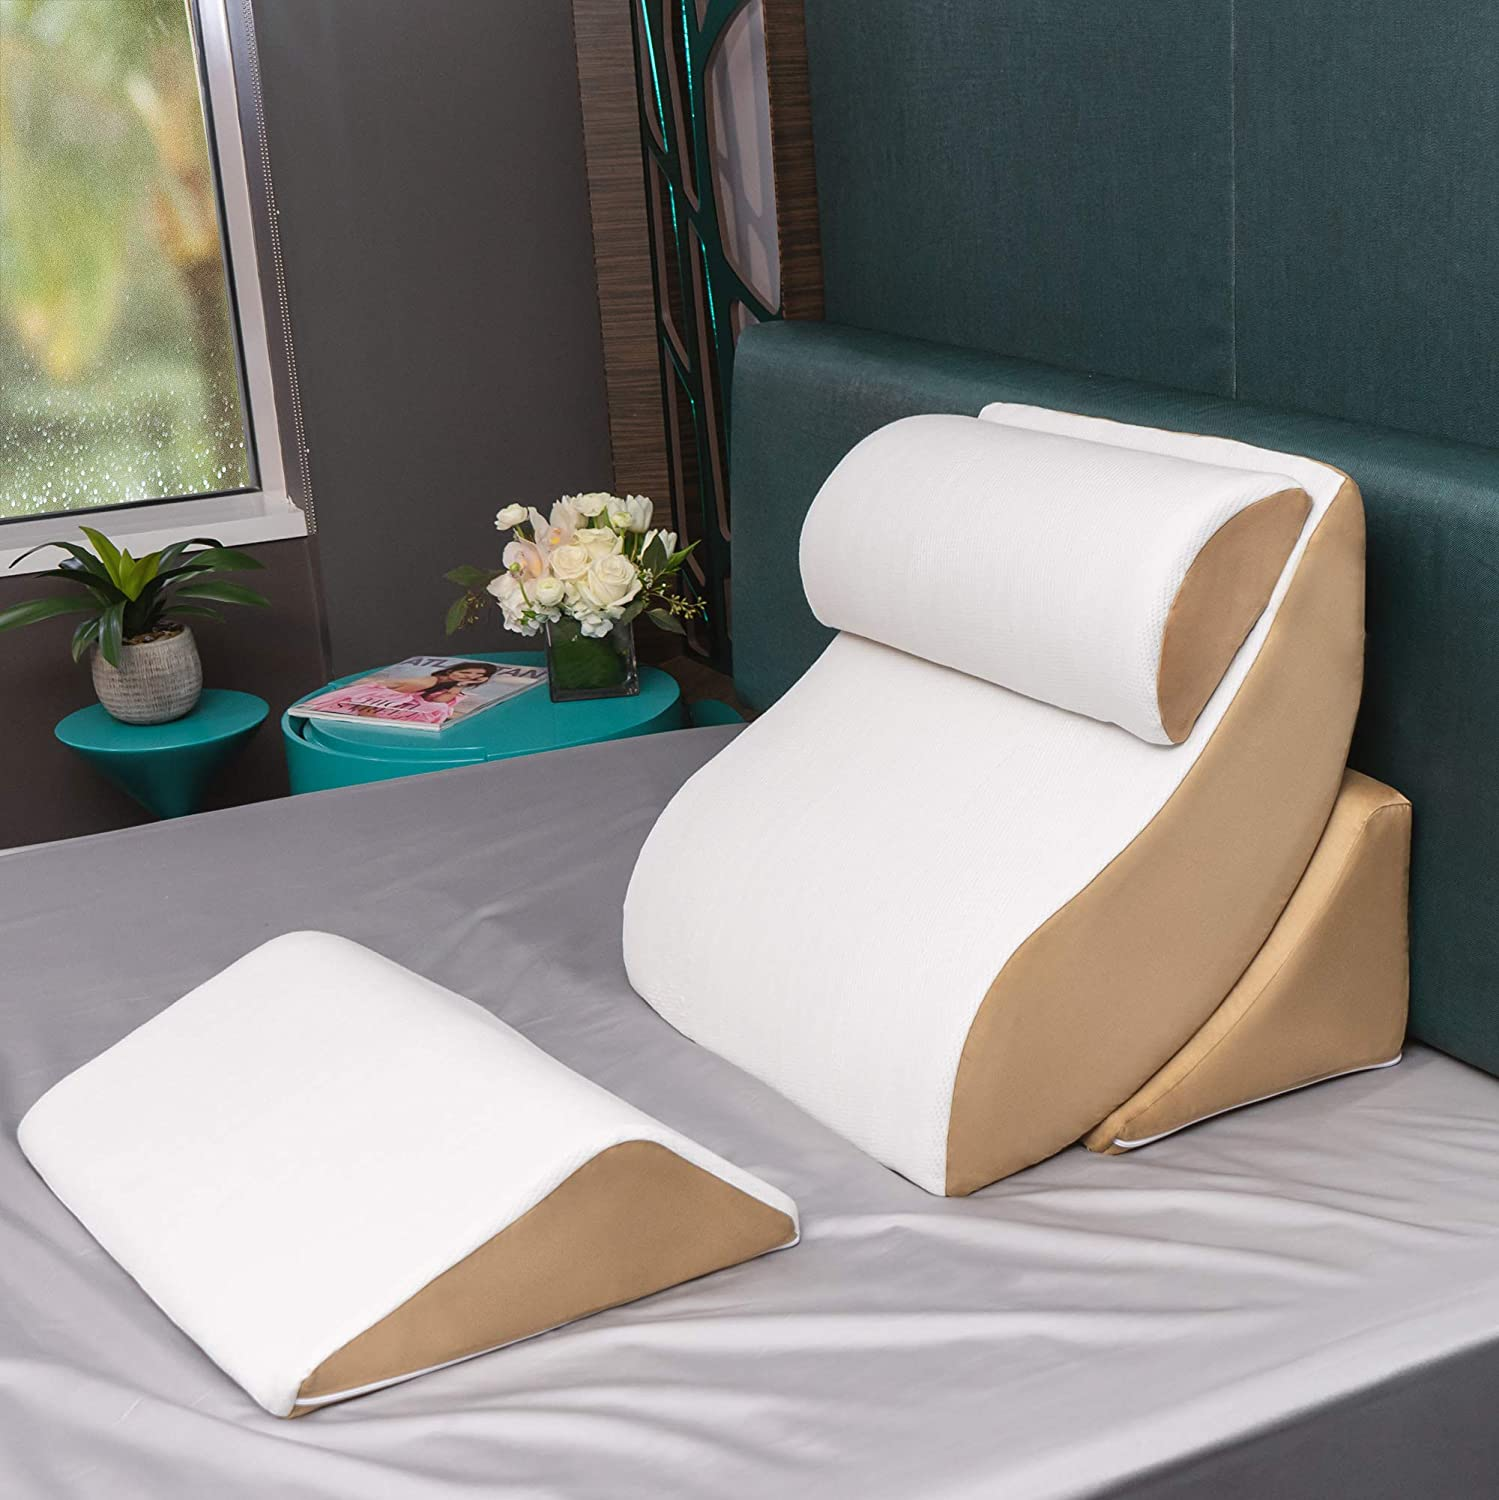 Avana Kind Bed Orthopedic Support Pillow